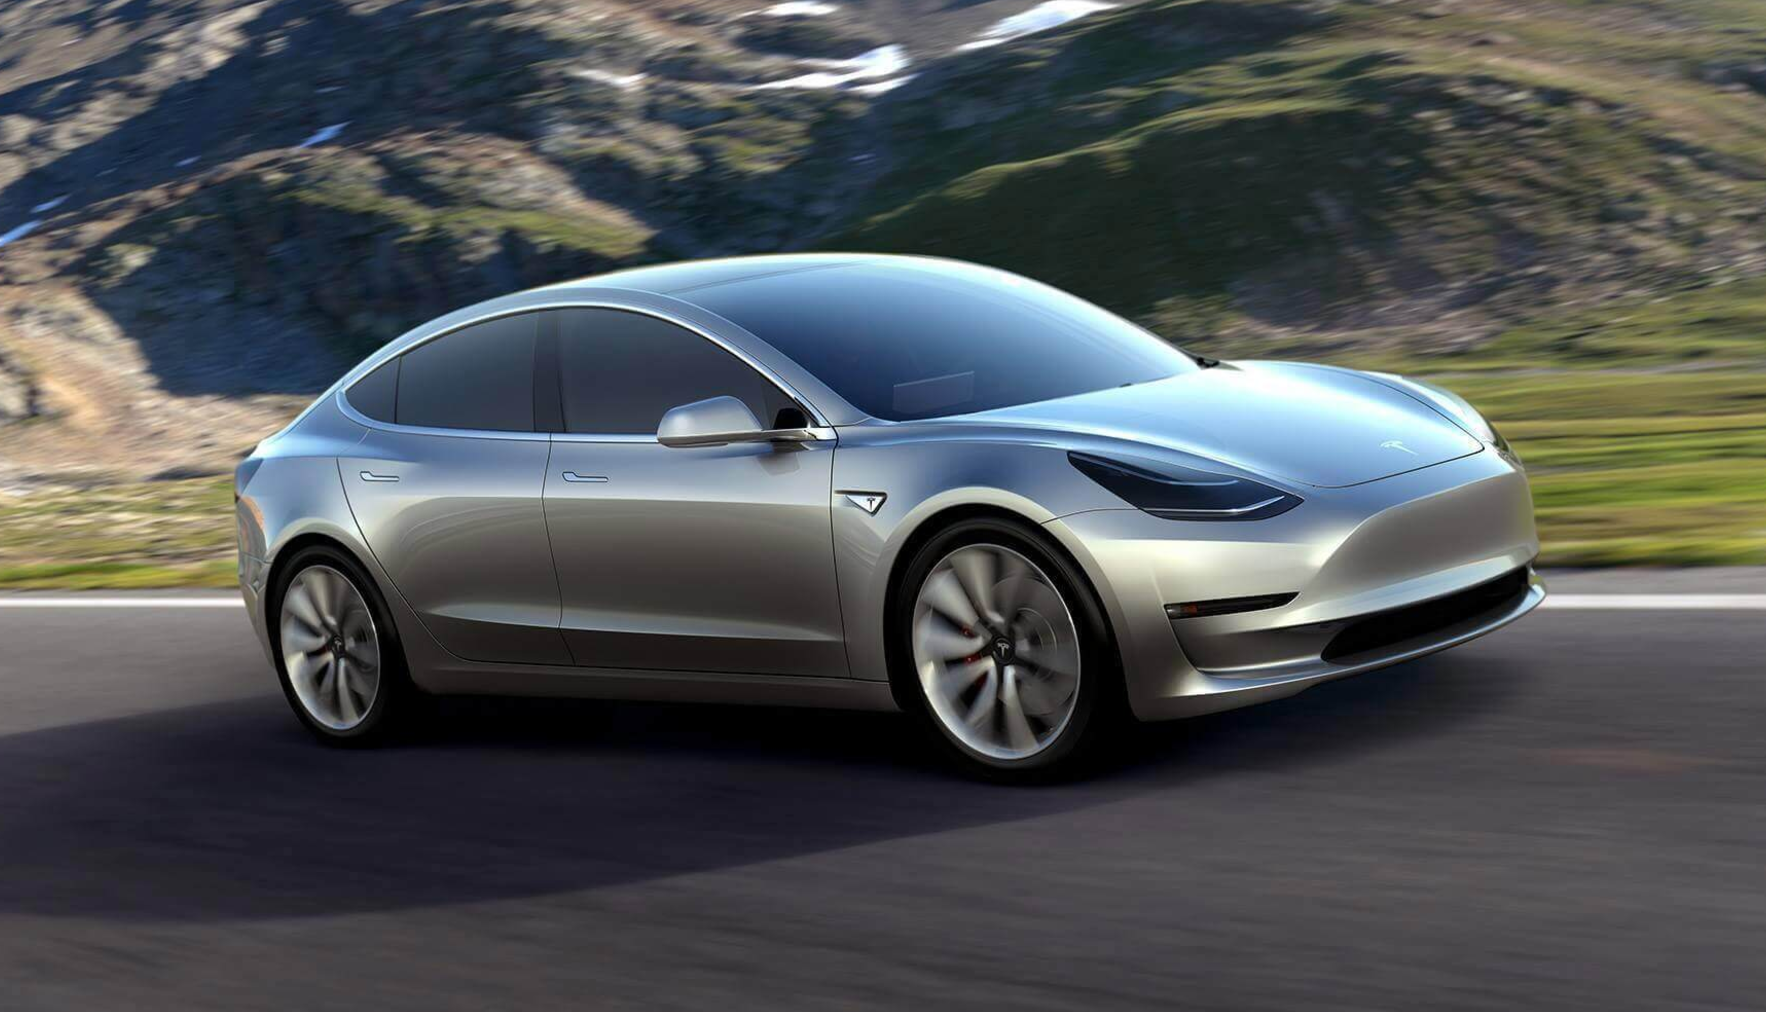 Musk Confirms Tesla Model 3 Has 50 kWh And 75 kWh Batteries